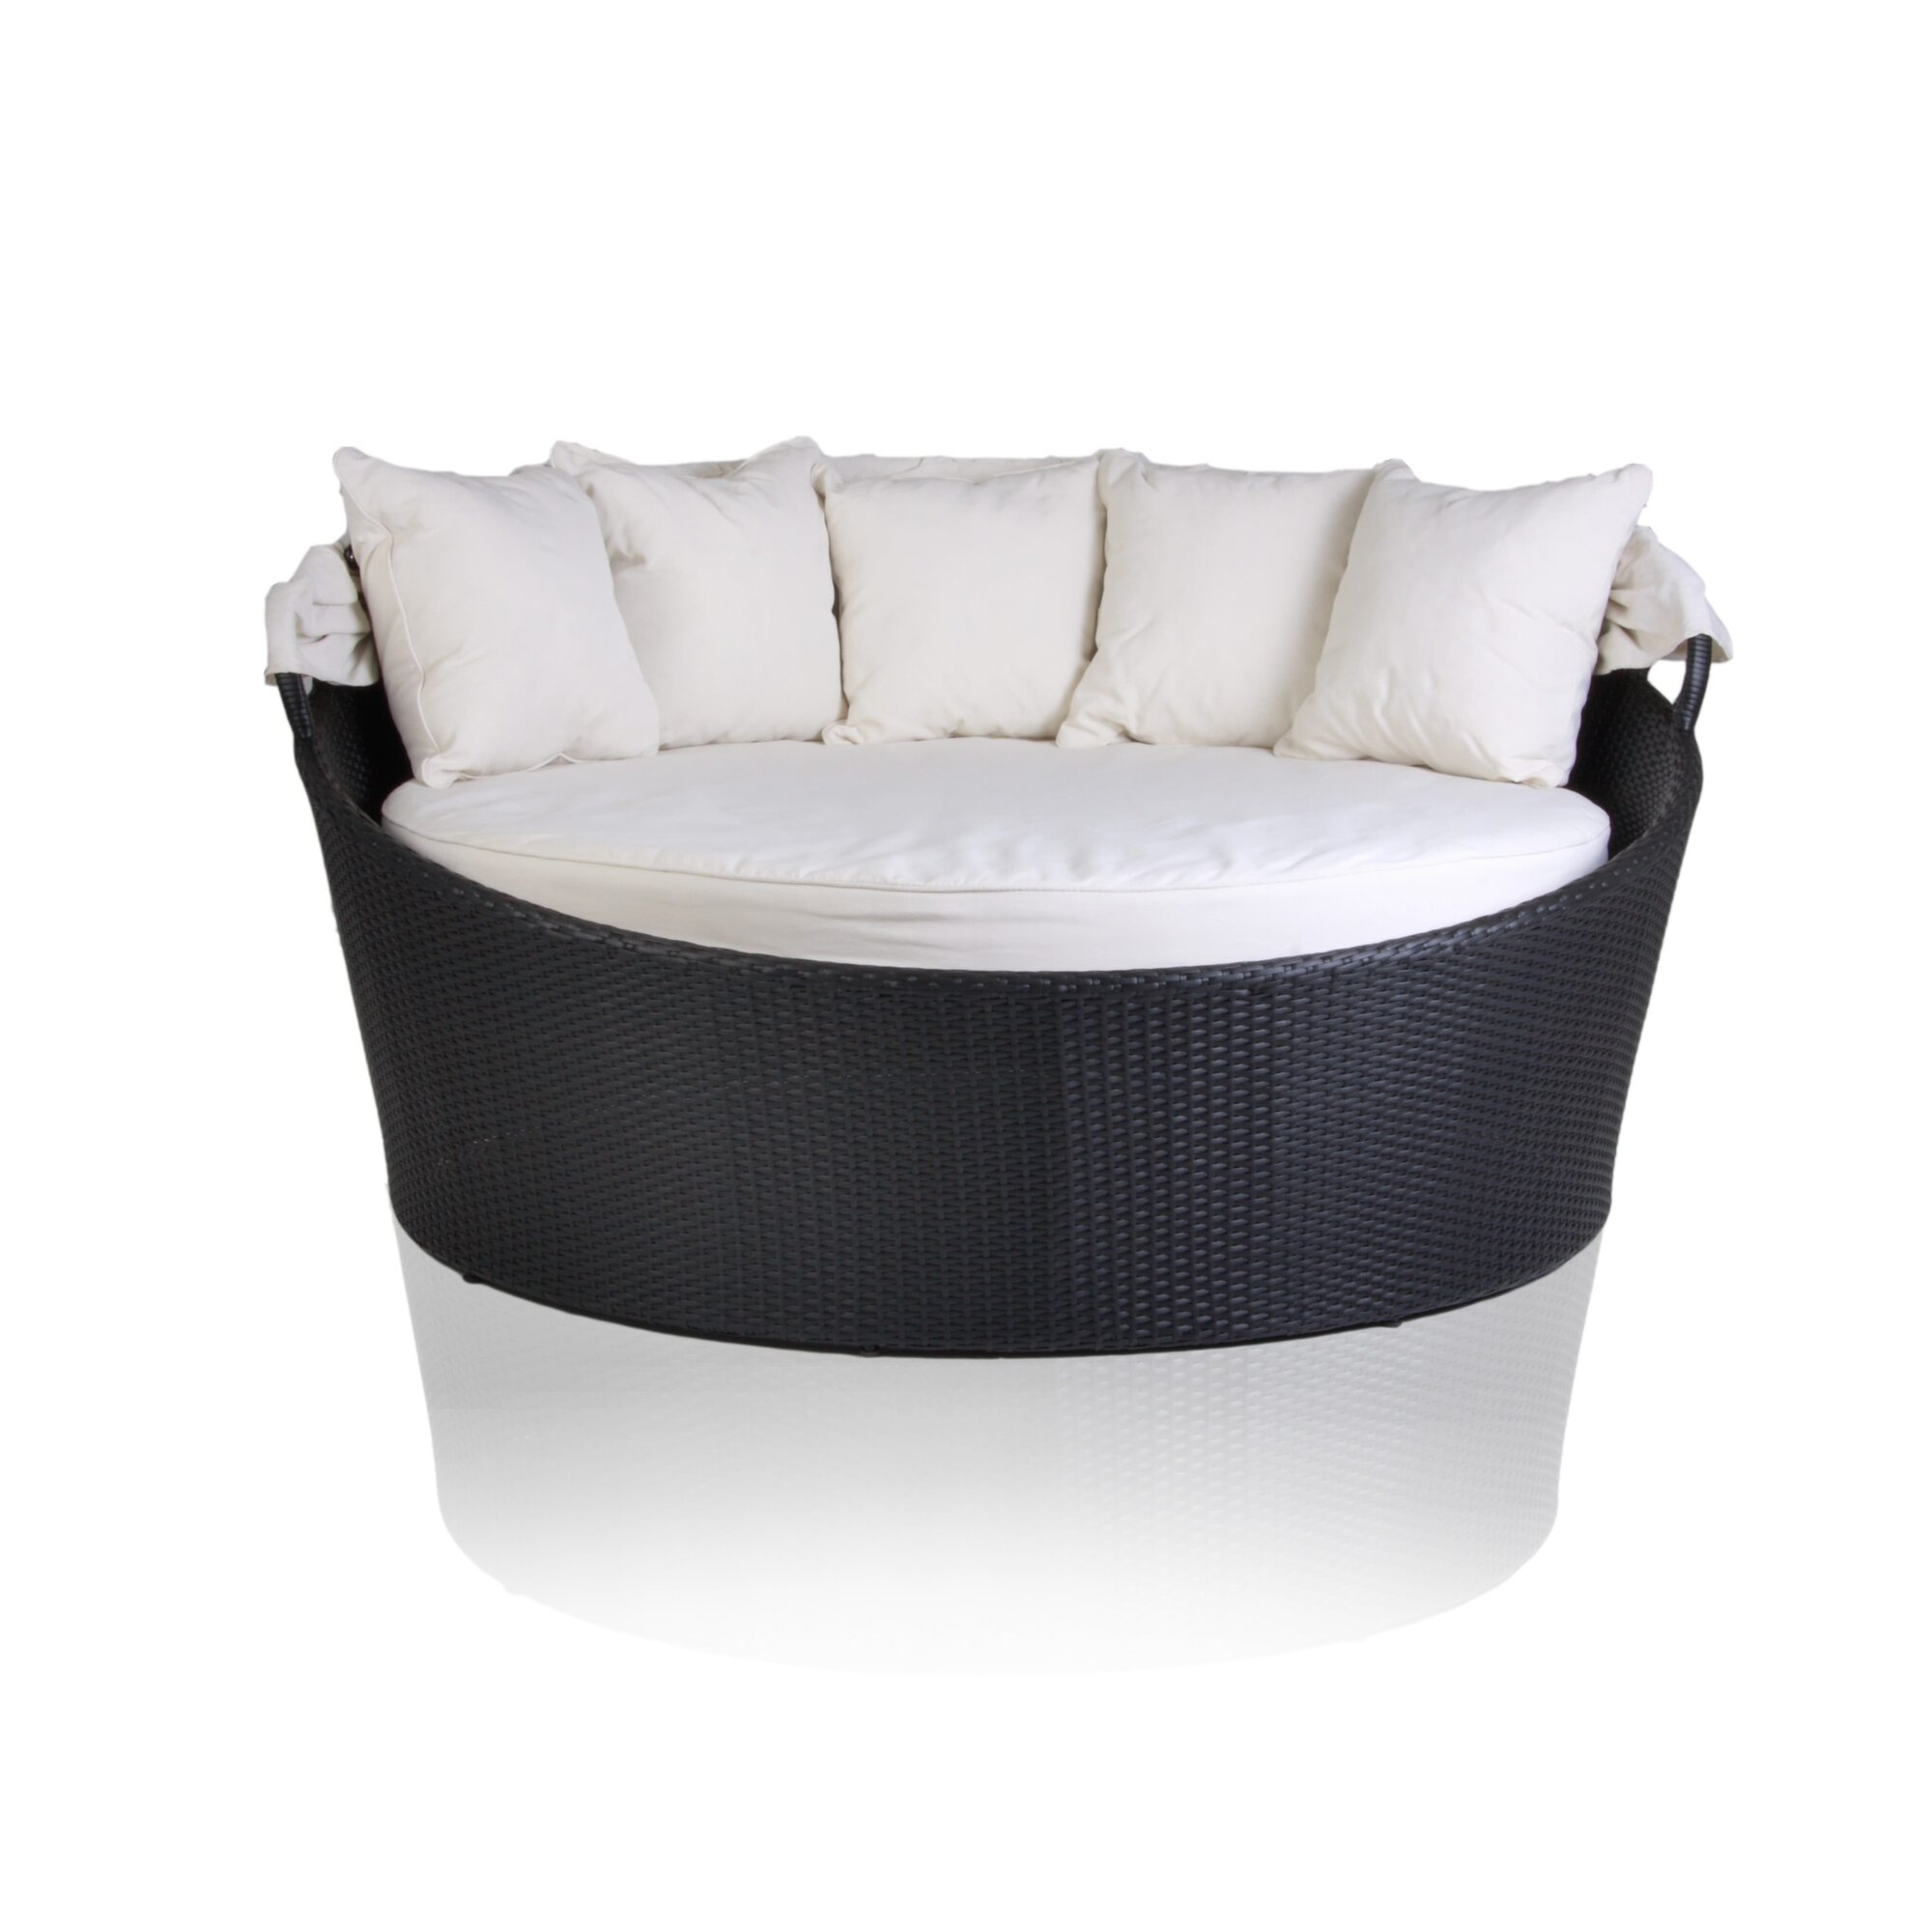 UrbanMod Outdoor Daybed with Cushion & Reviews